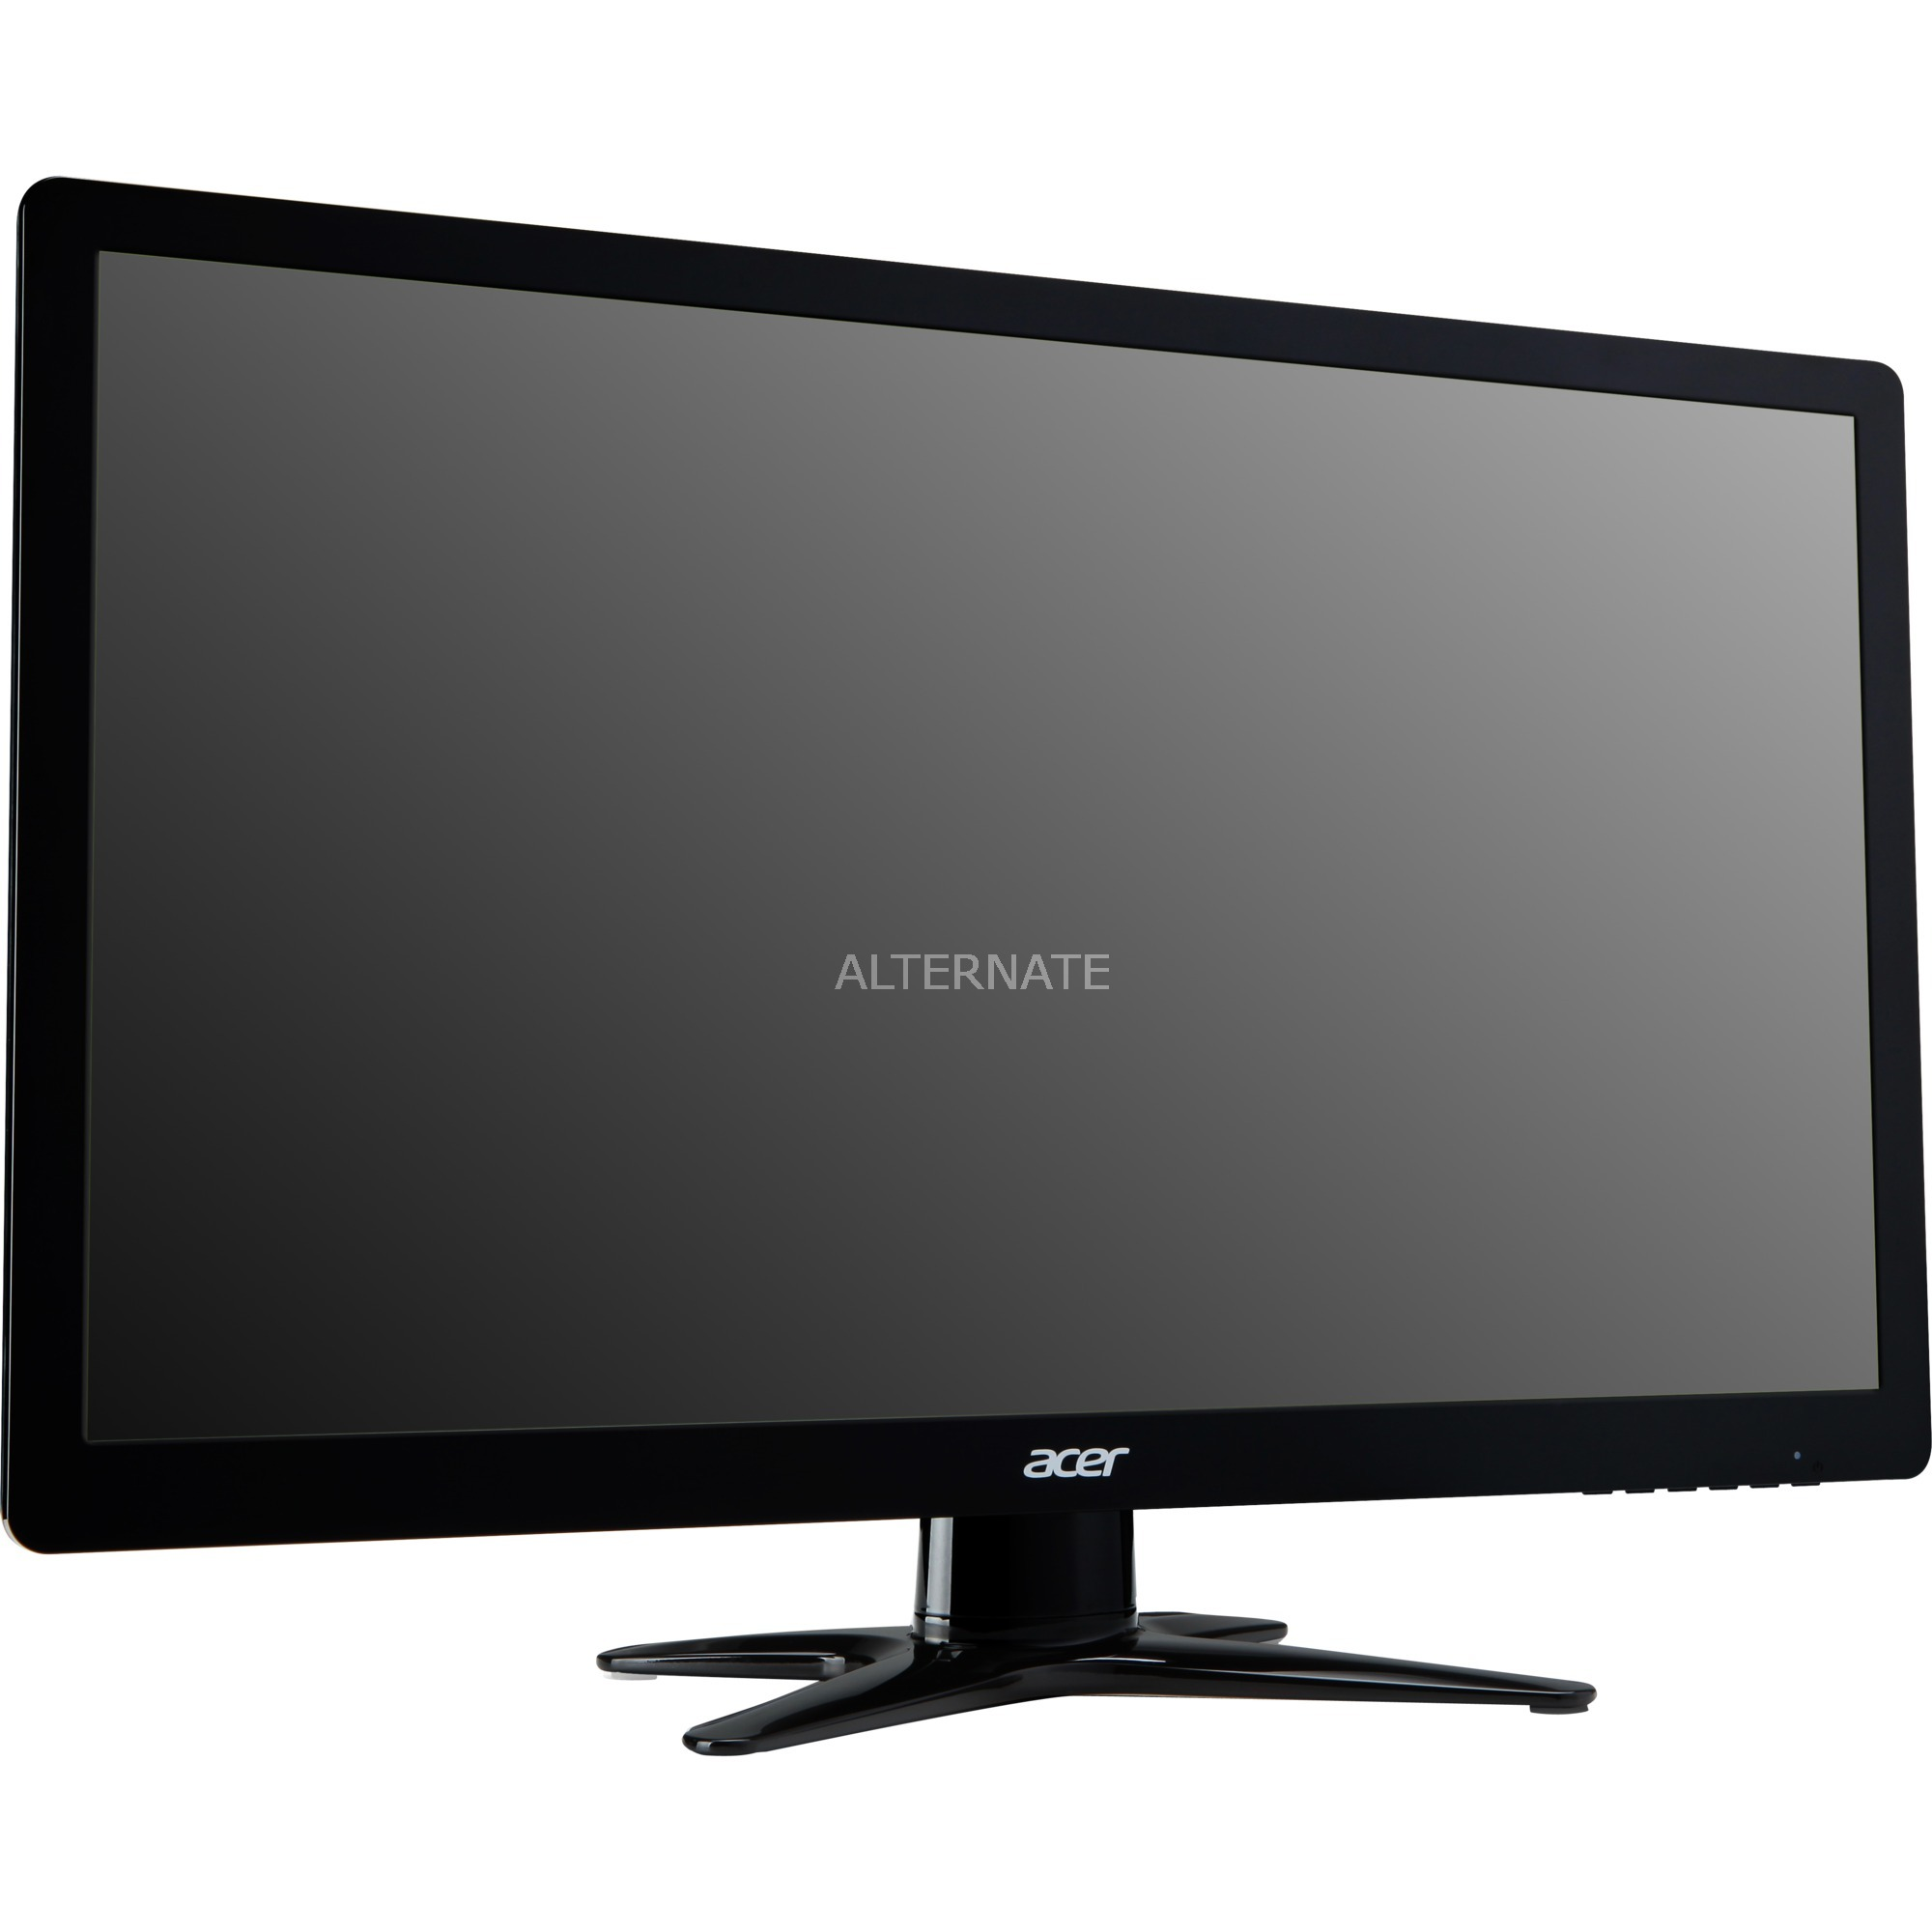 g6-g276hlj-27-full-hd-sort-pc-fladskarm-led-skarm